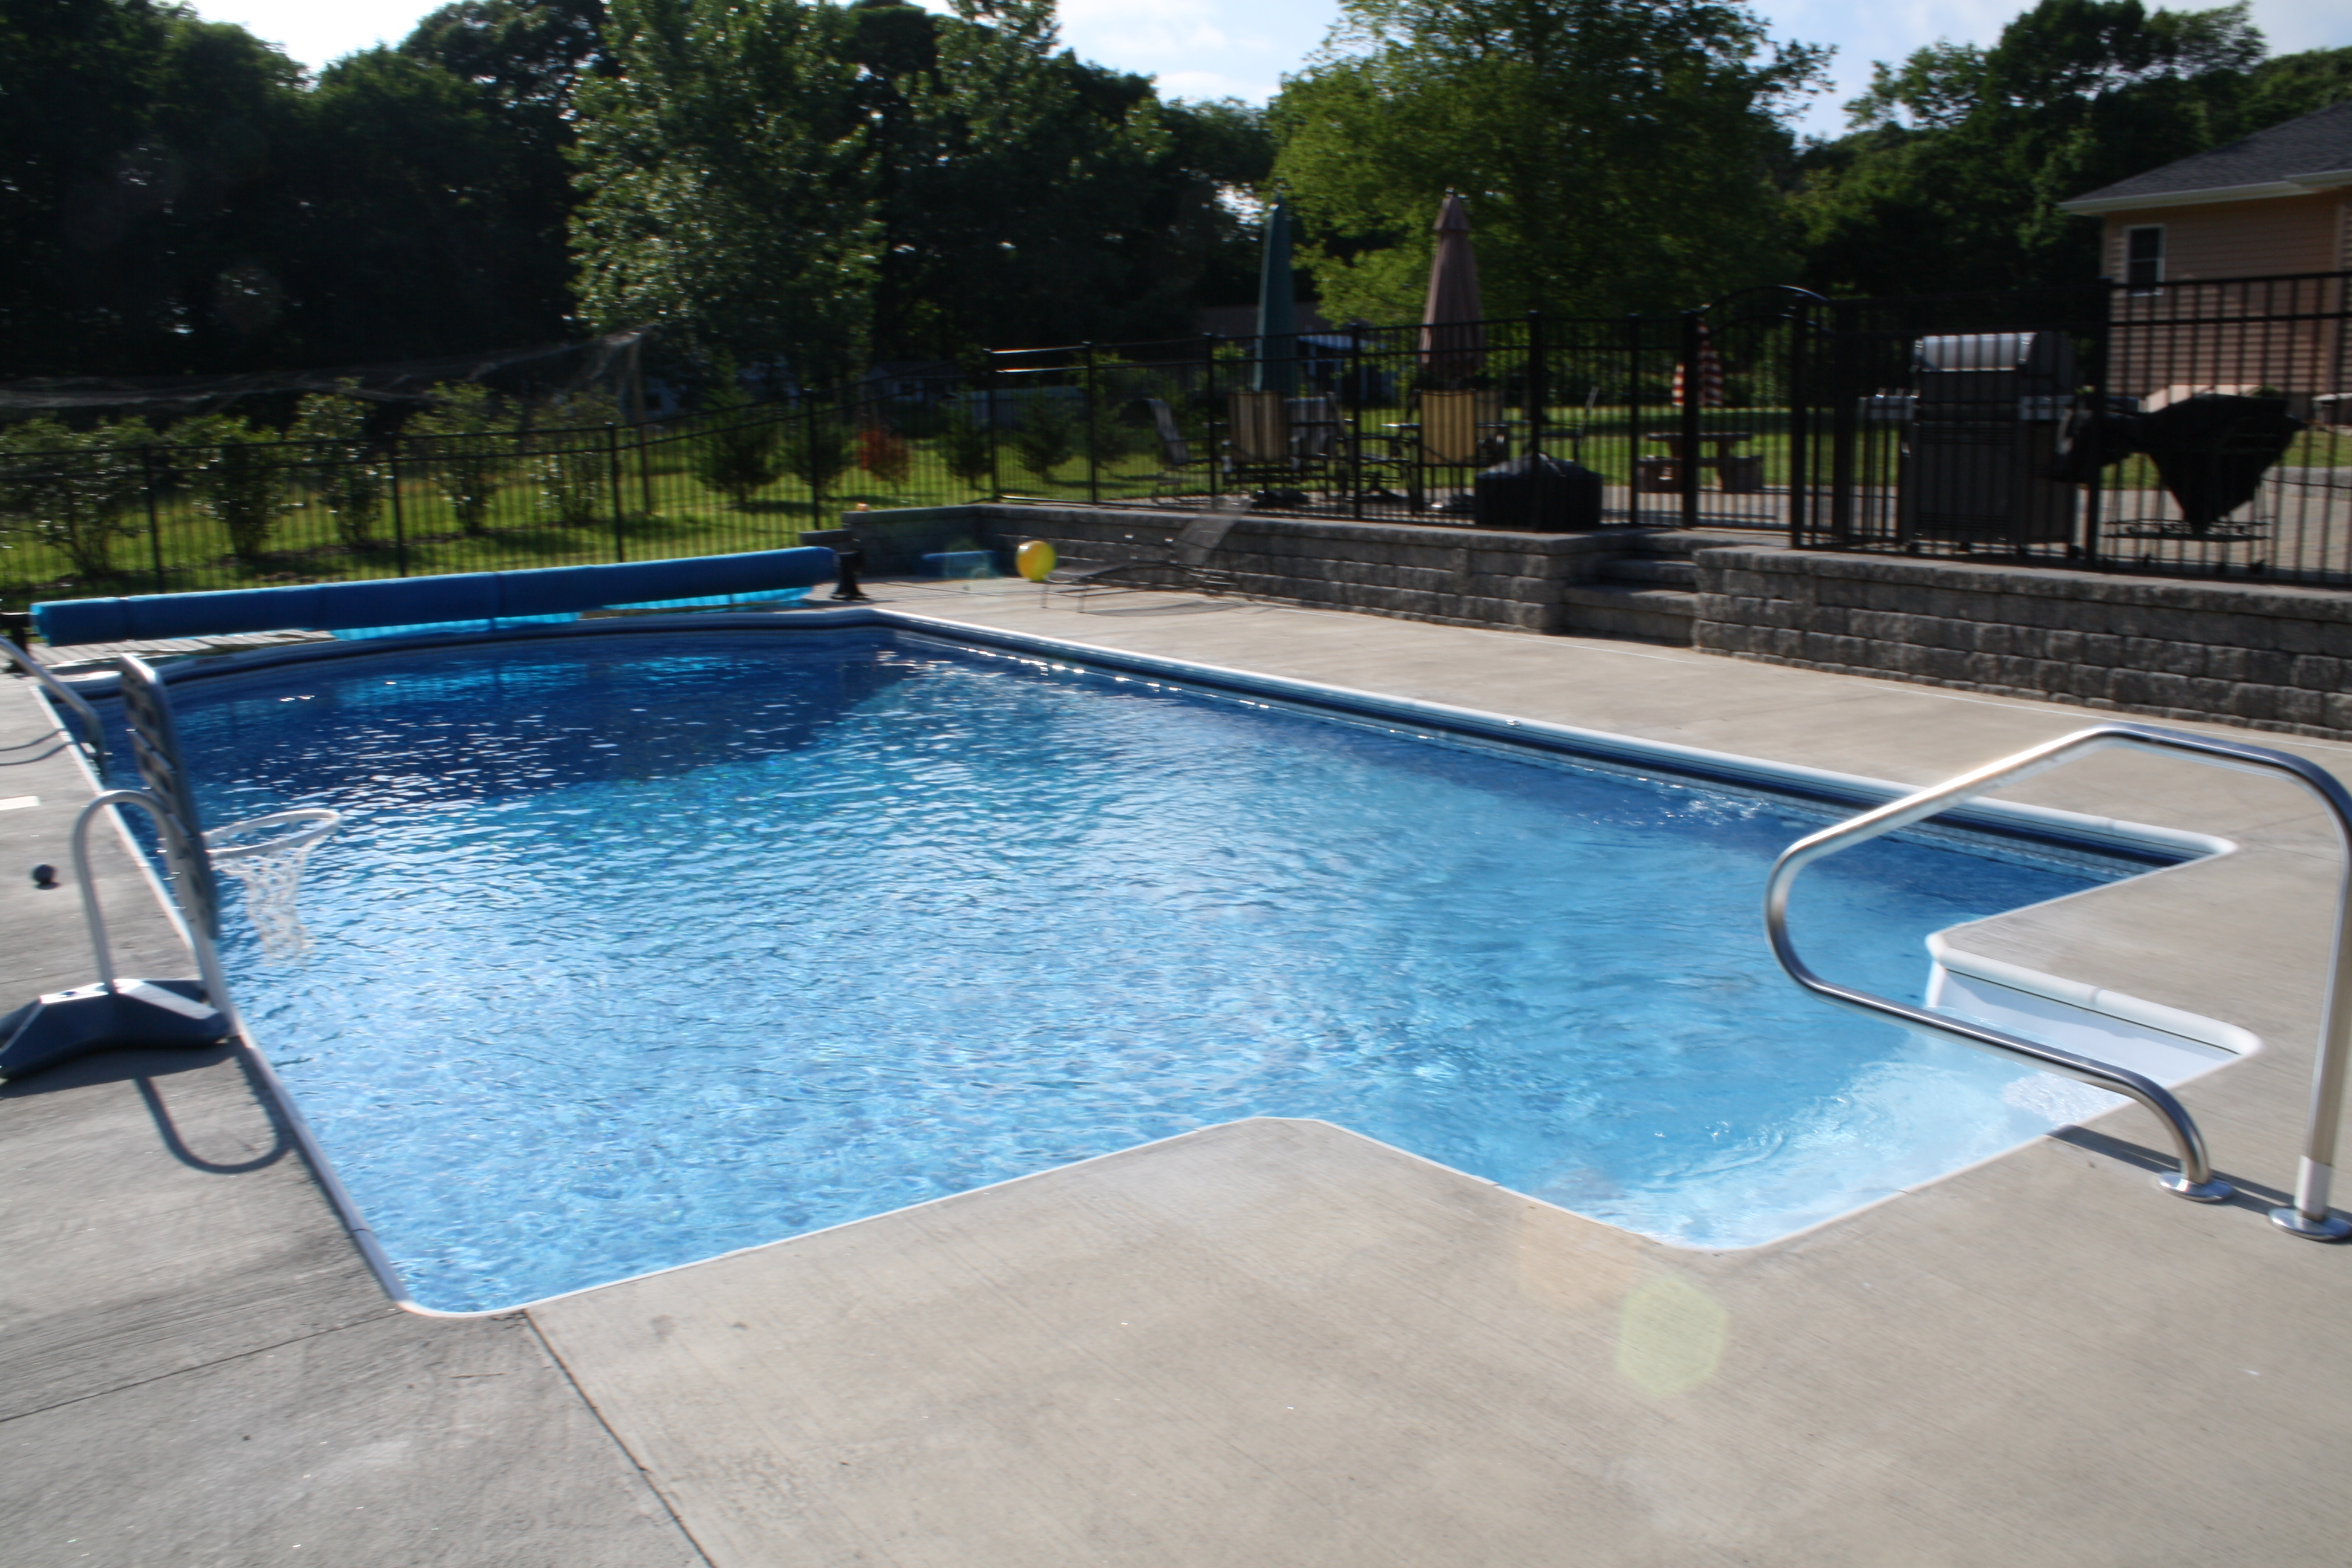 Spas pools unlimited inc pools - How big is an average swimming pool ...